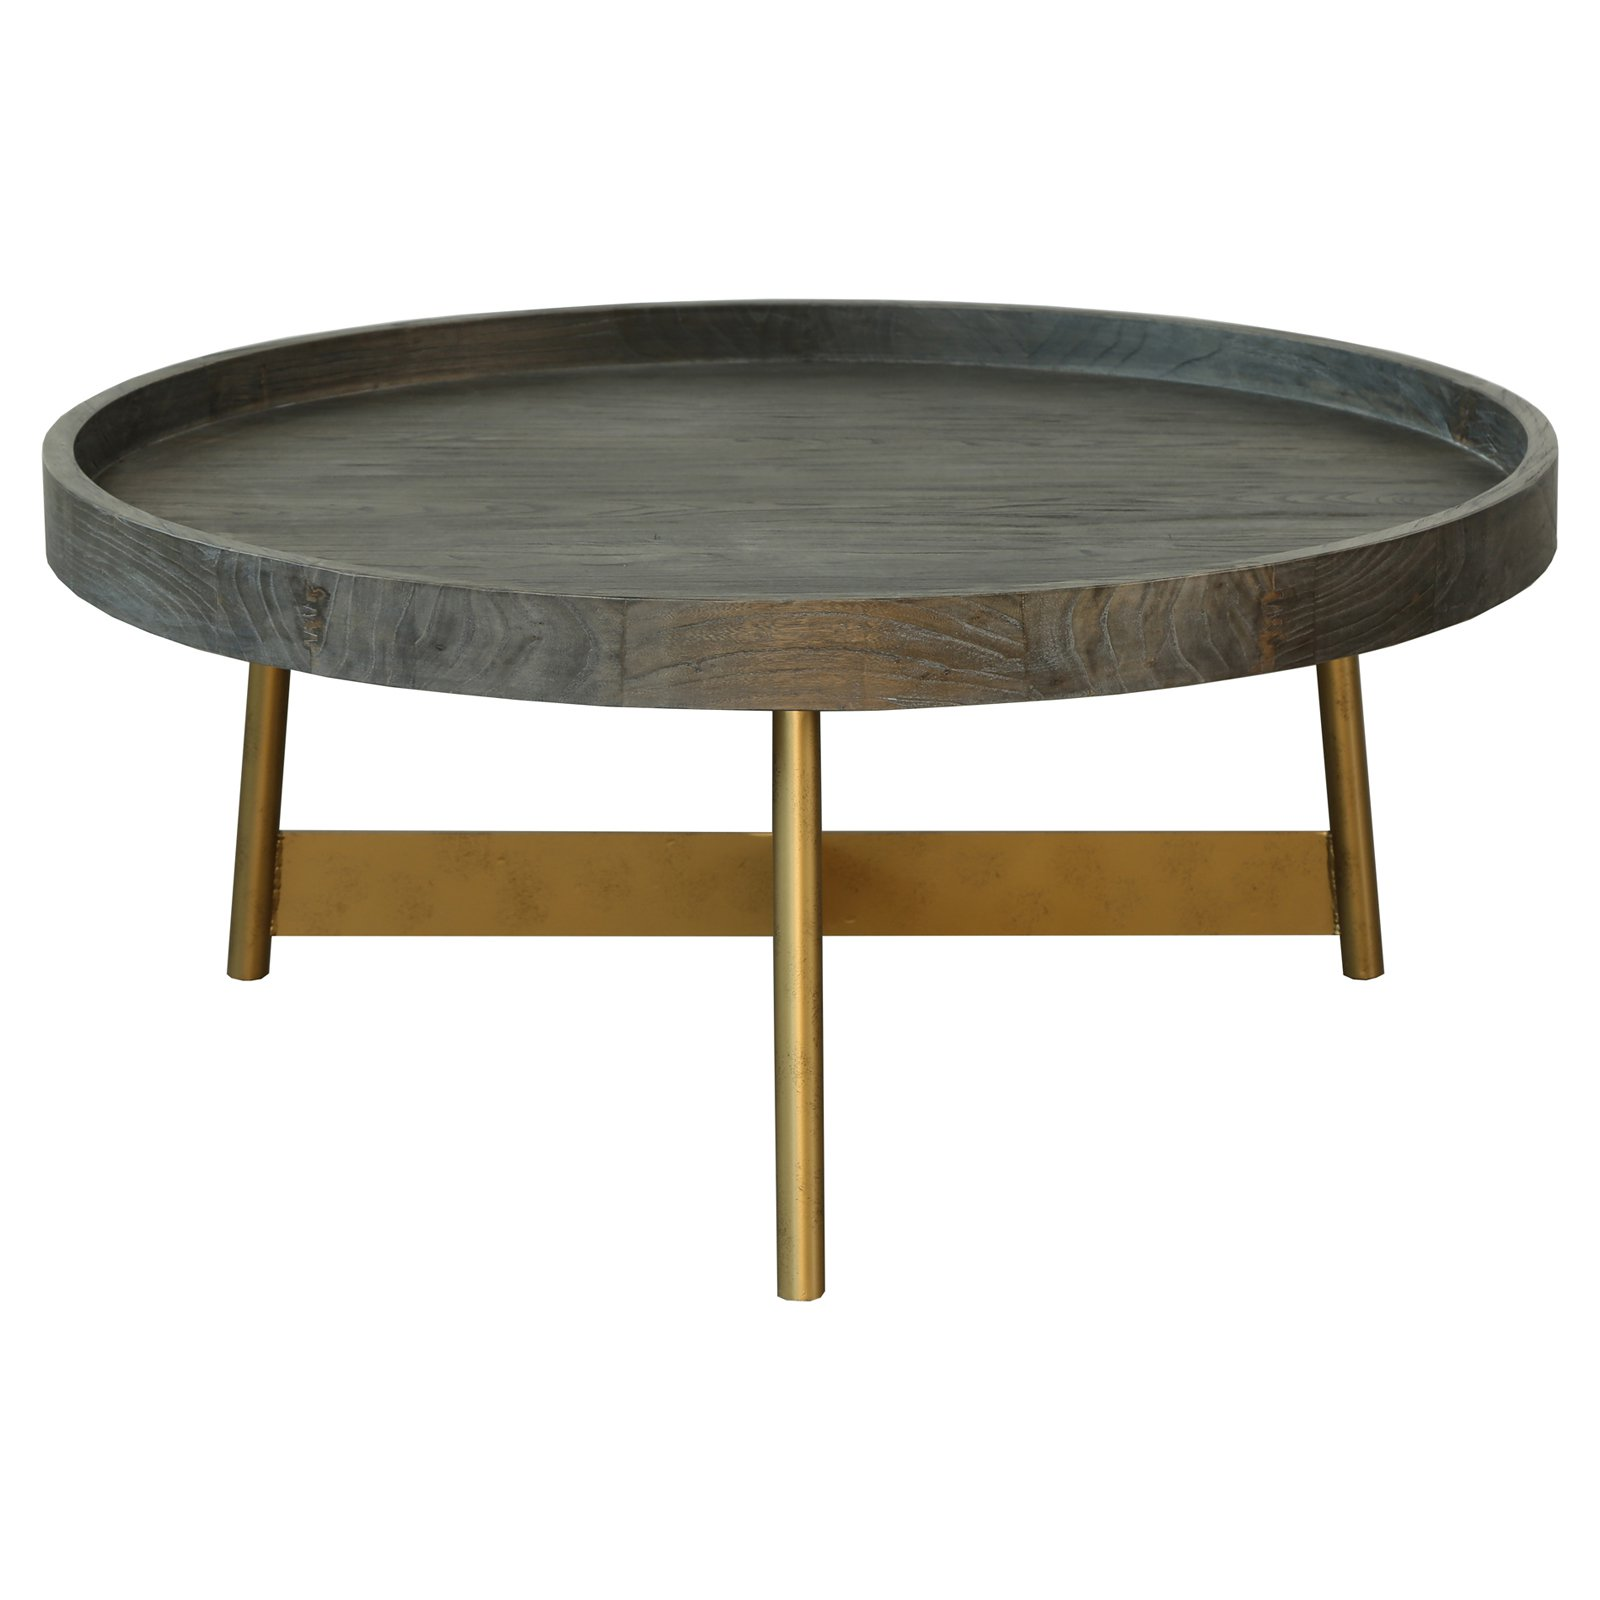 Moes Home Collection Bellucci Coffee Table Coffee Table Round Coffee Table Brown Coffee Table [ 1600 x 1600 Pixel ]